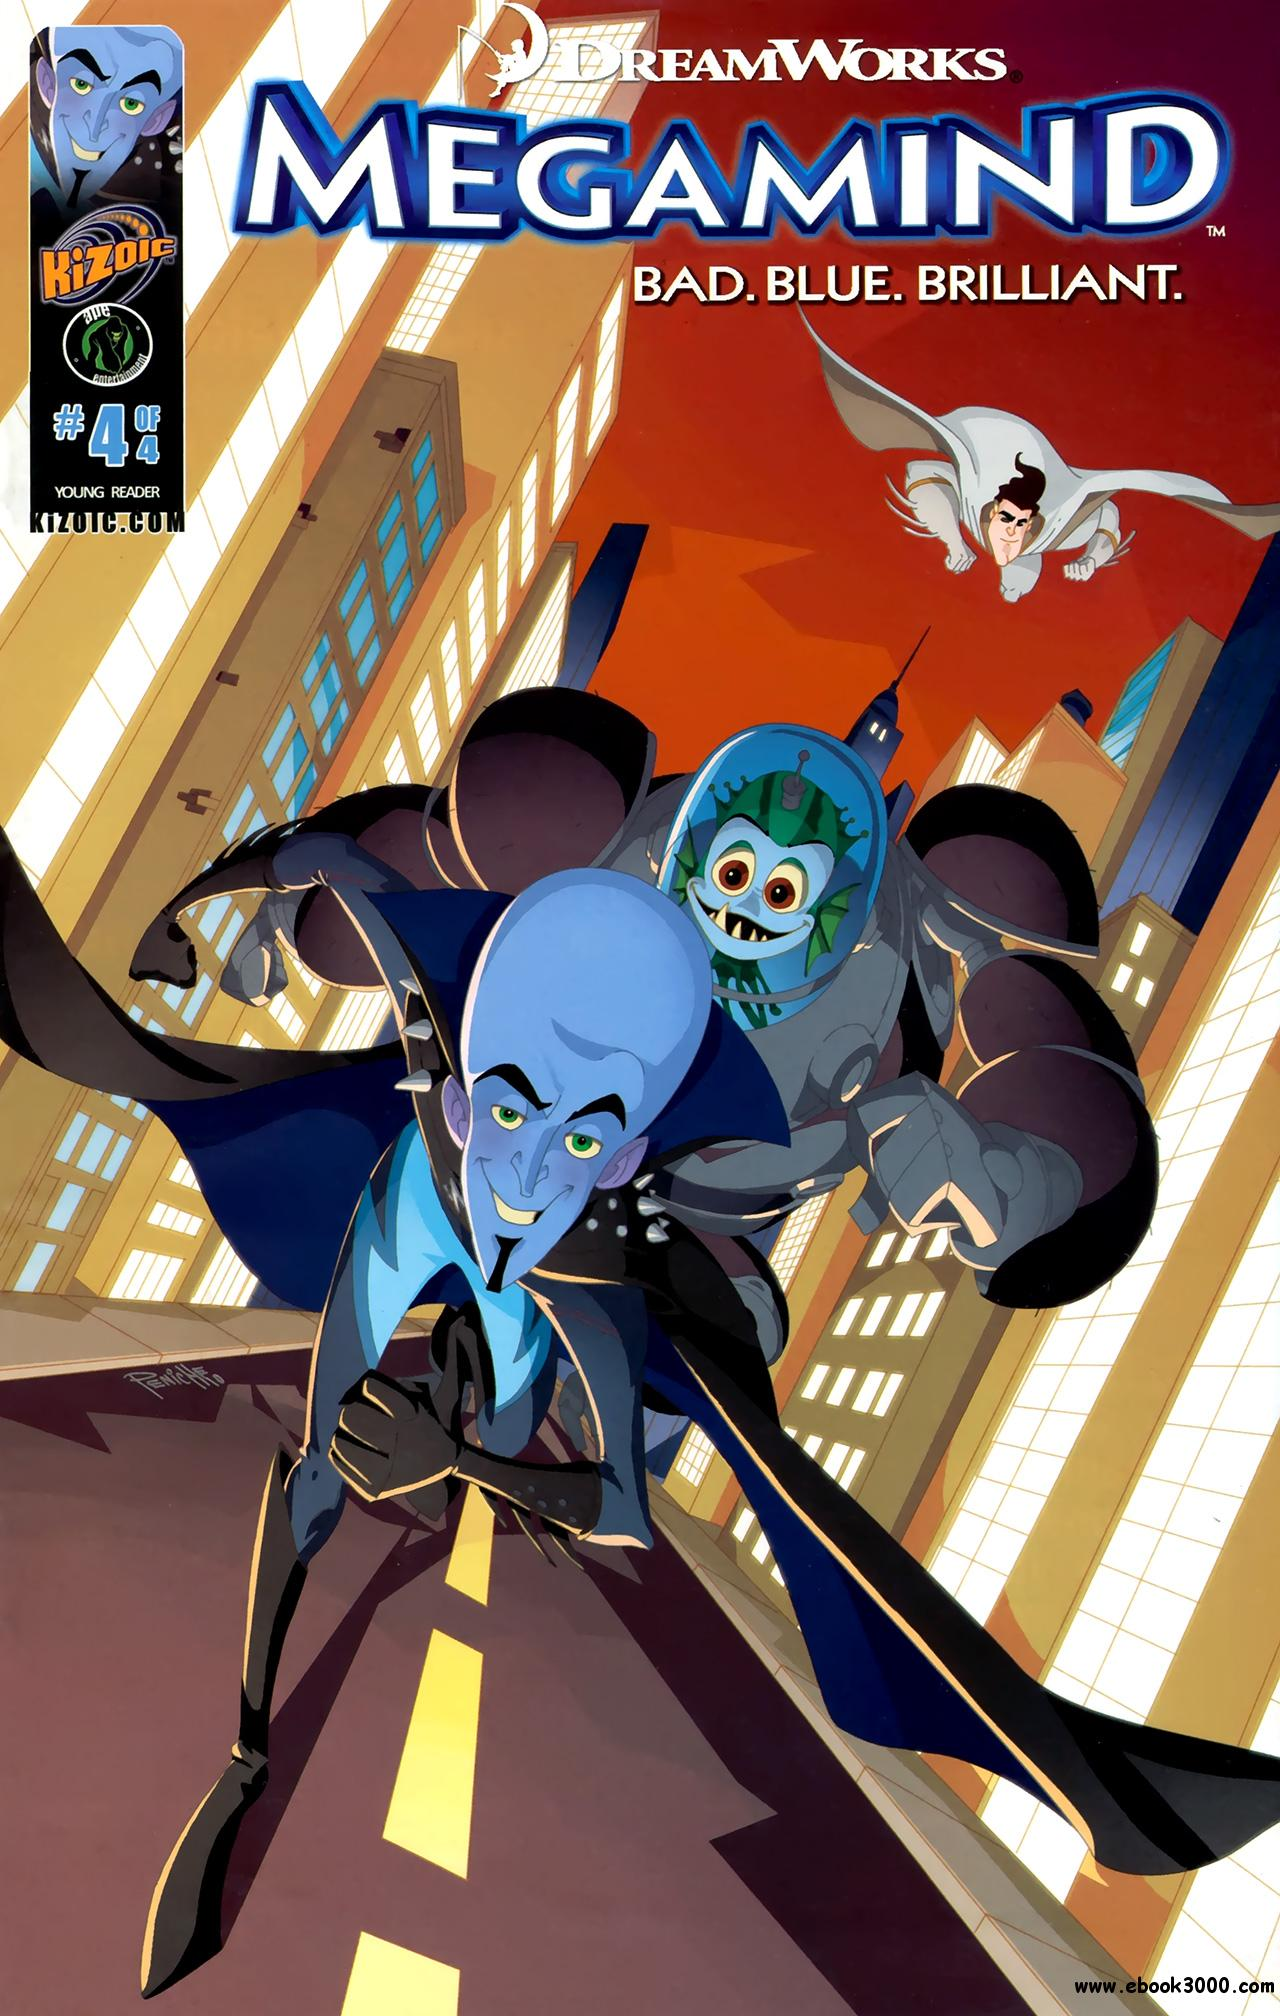 Megamind #4 (of 04) (2011) free download